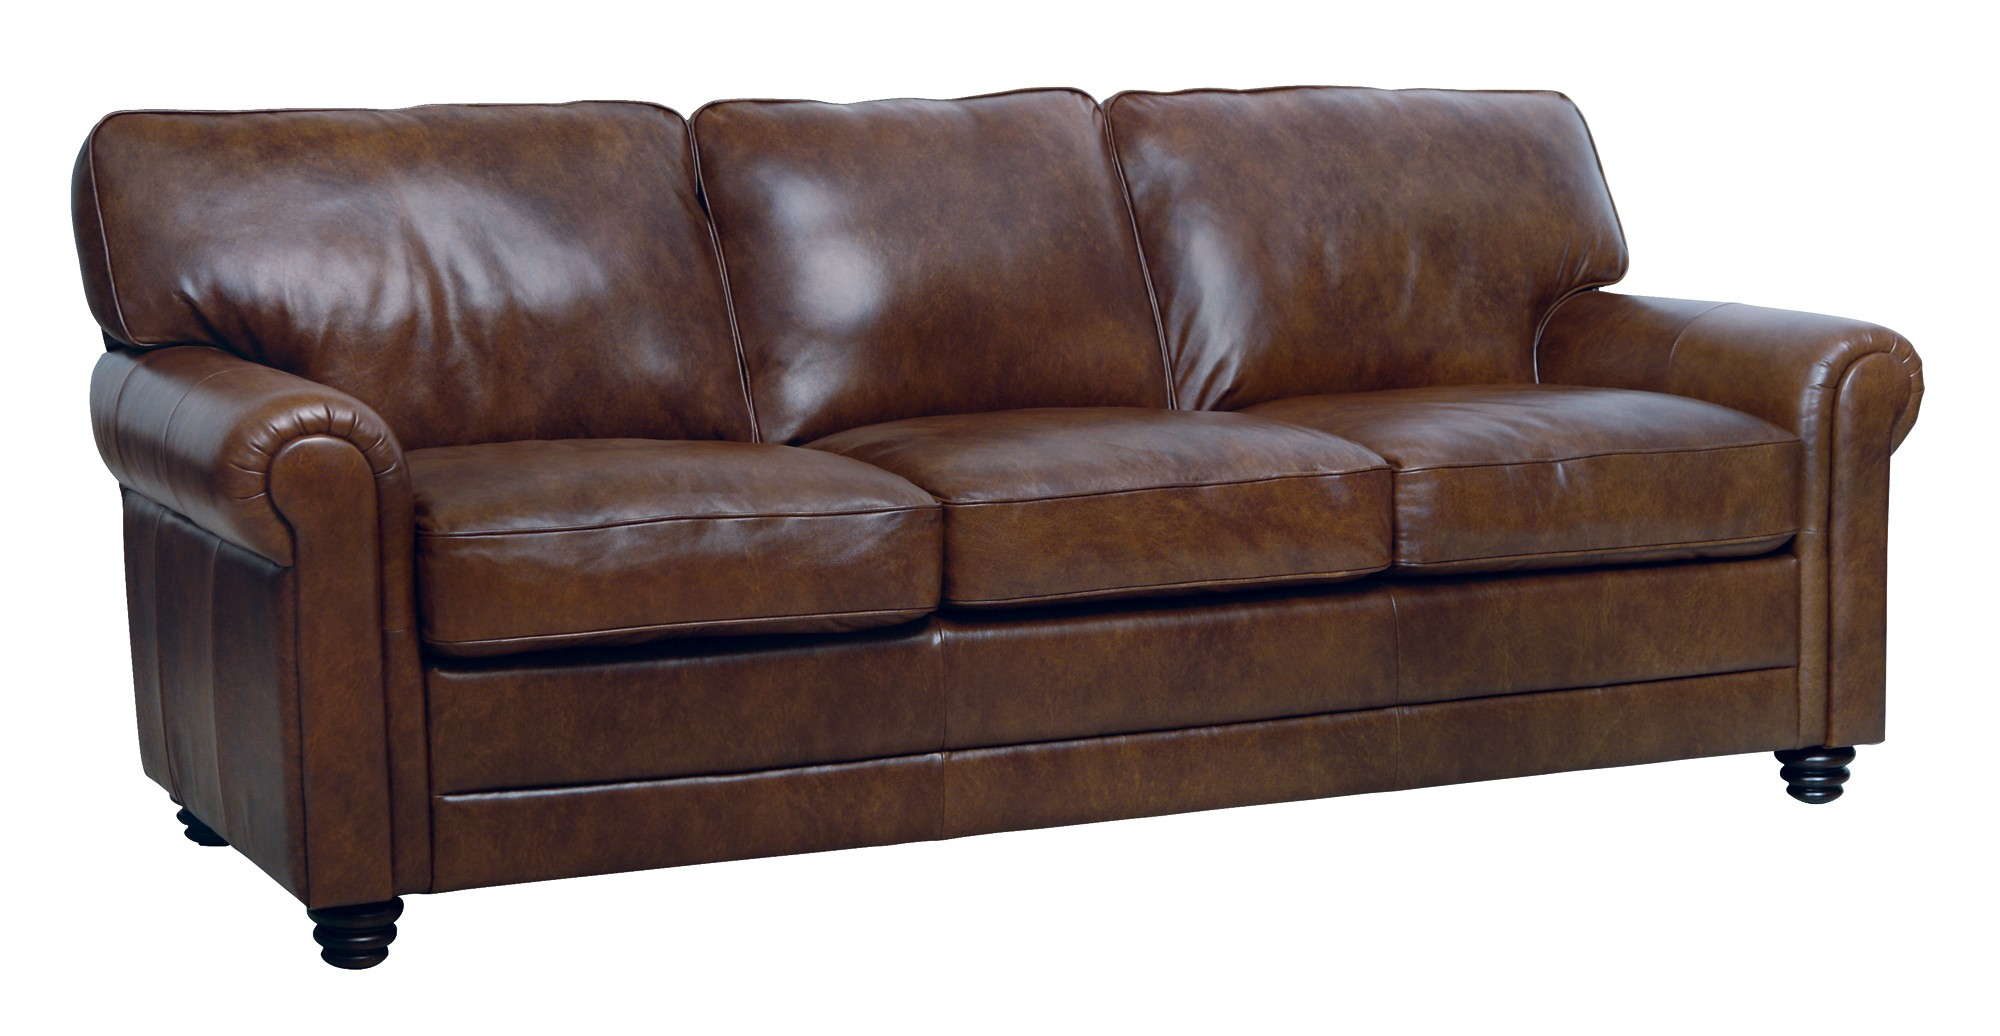 Andrew Collection Luke Leather Furniture